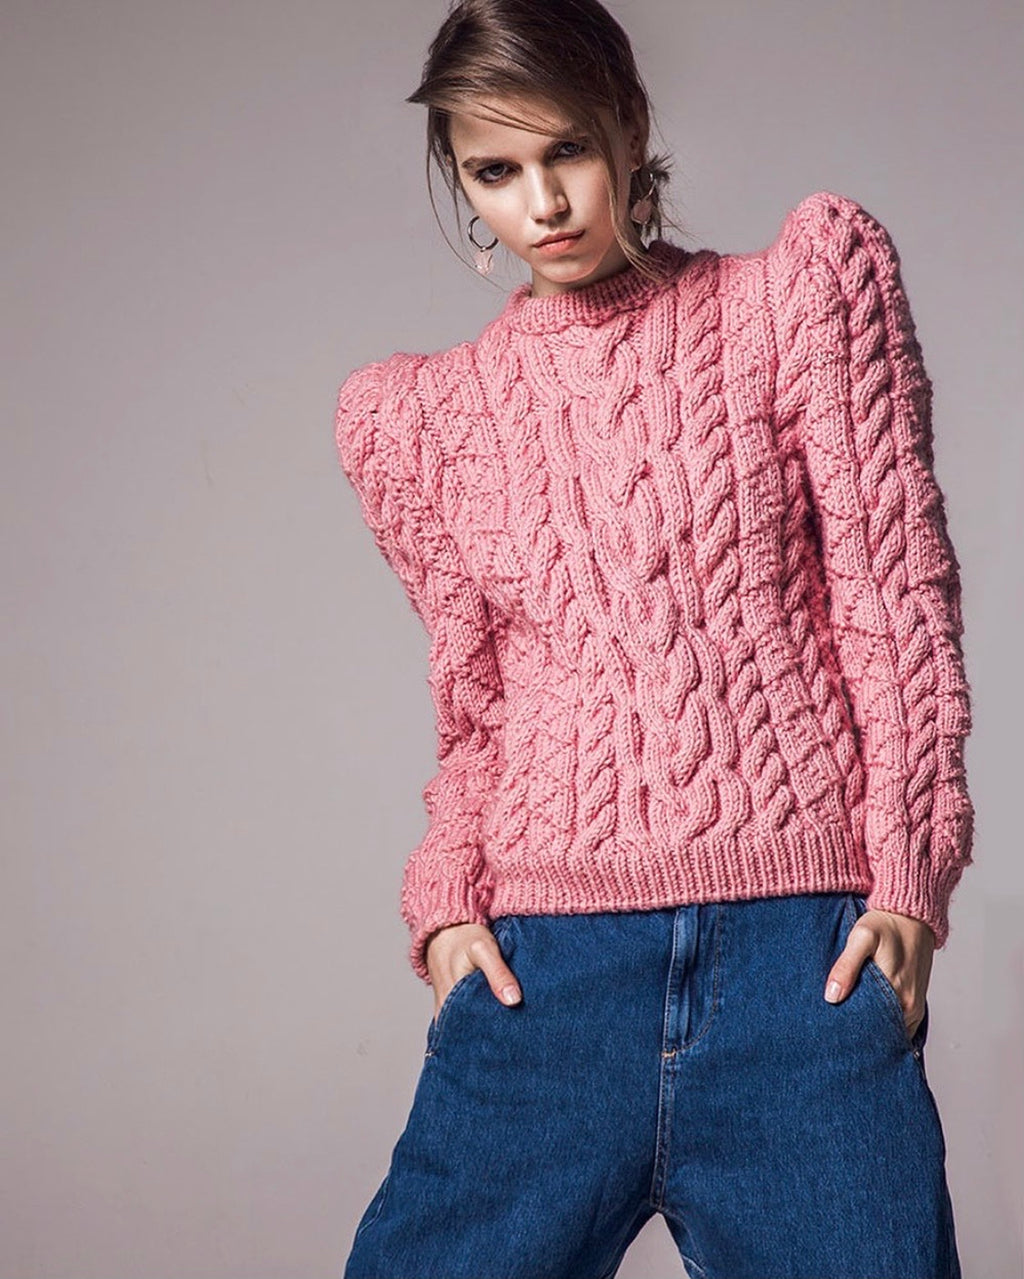 Maridruna Vince Puff Sleeves Jumper in Dusty Rose